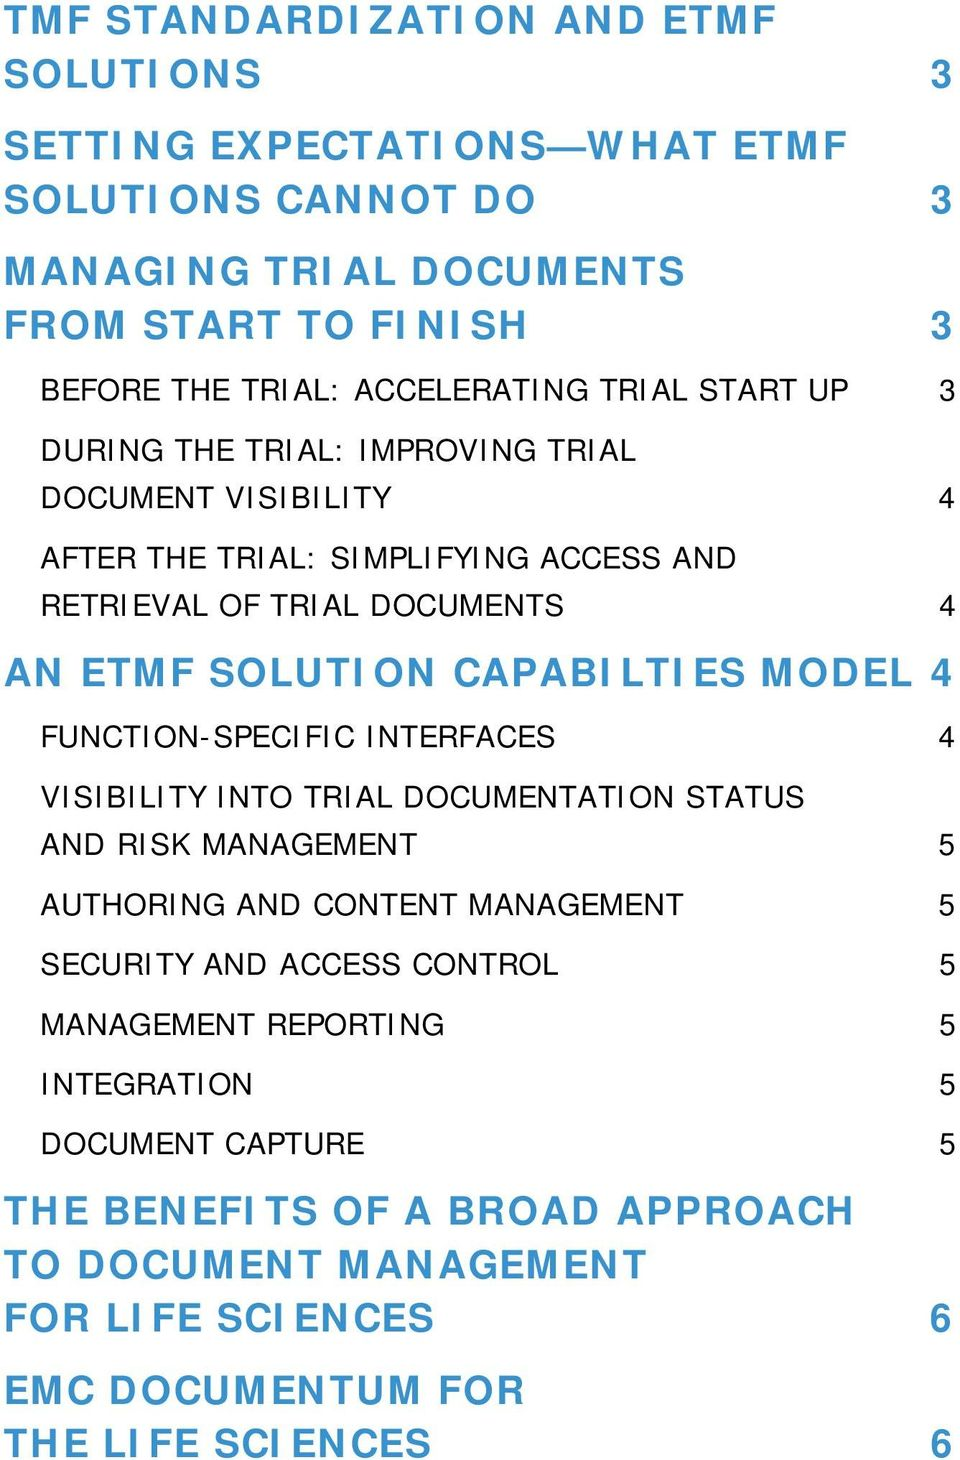 SOLUTION CAPABILTIES MODEL 4 FUNCTION-SPECIFIC INTERFACES 4 VISIBILITY INTO TRIAL DOCUMENTATION STATUS AND RISK MANAGEMENT 5 AUTHORING AND CONTENT MANAGEMENT 5 SECURITY